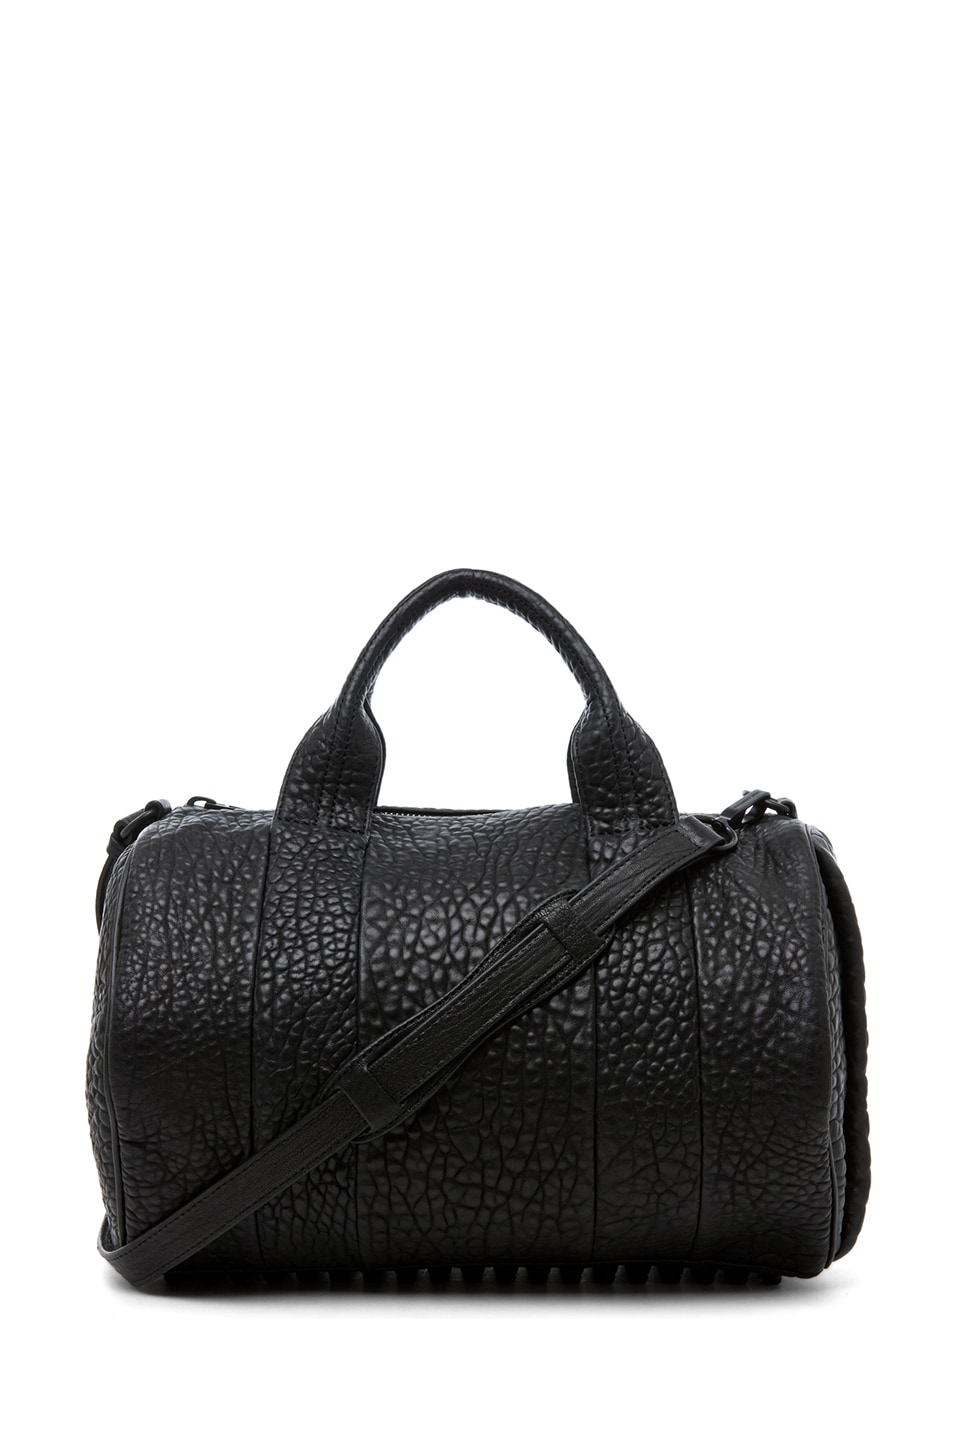 Image 1 of Alexander Wang Rocco Satchel in Matte Black